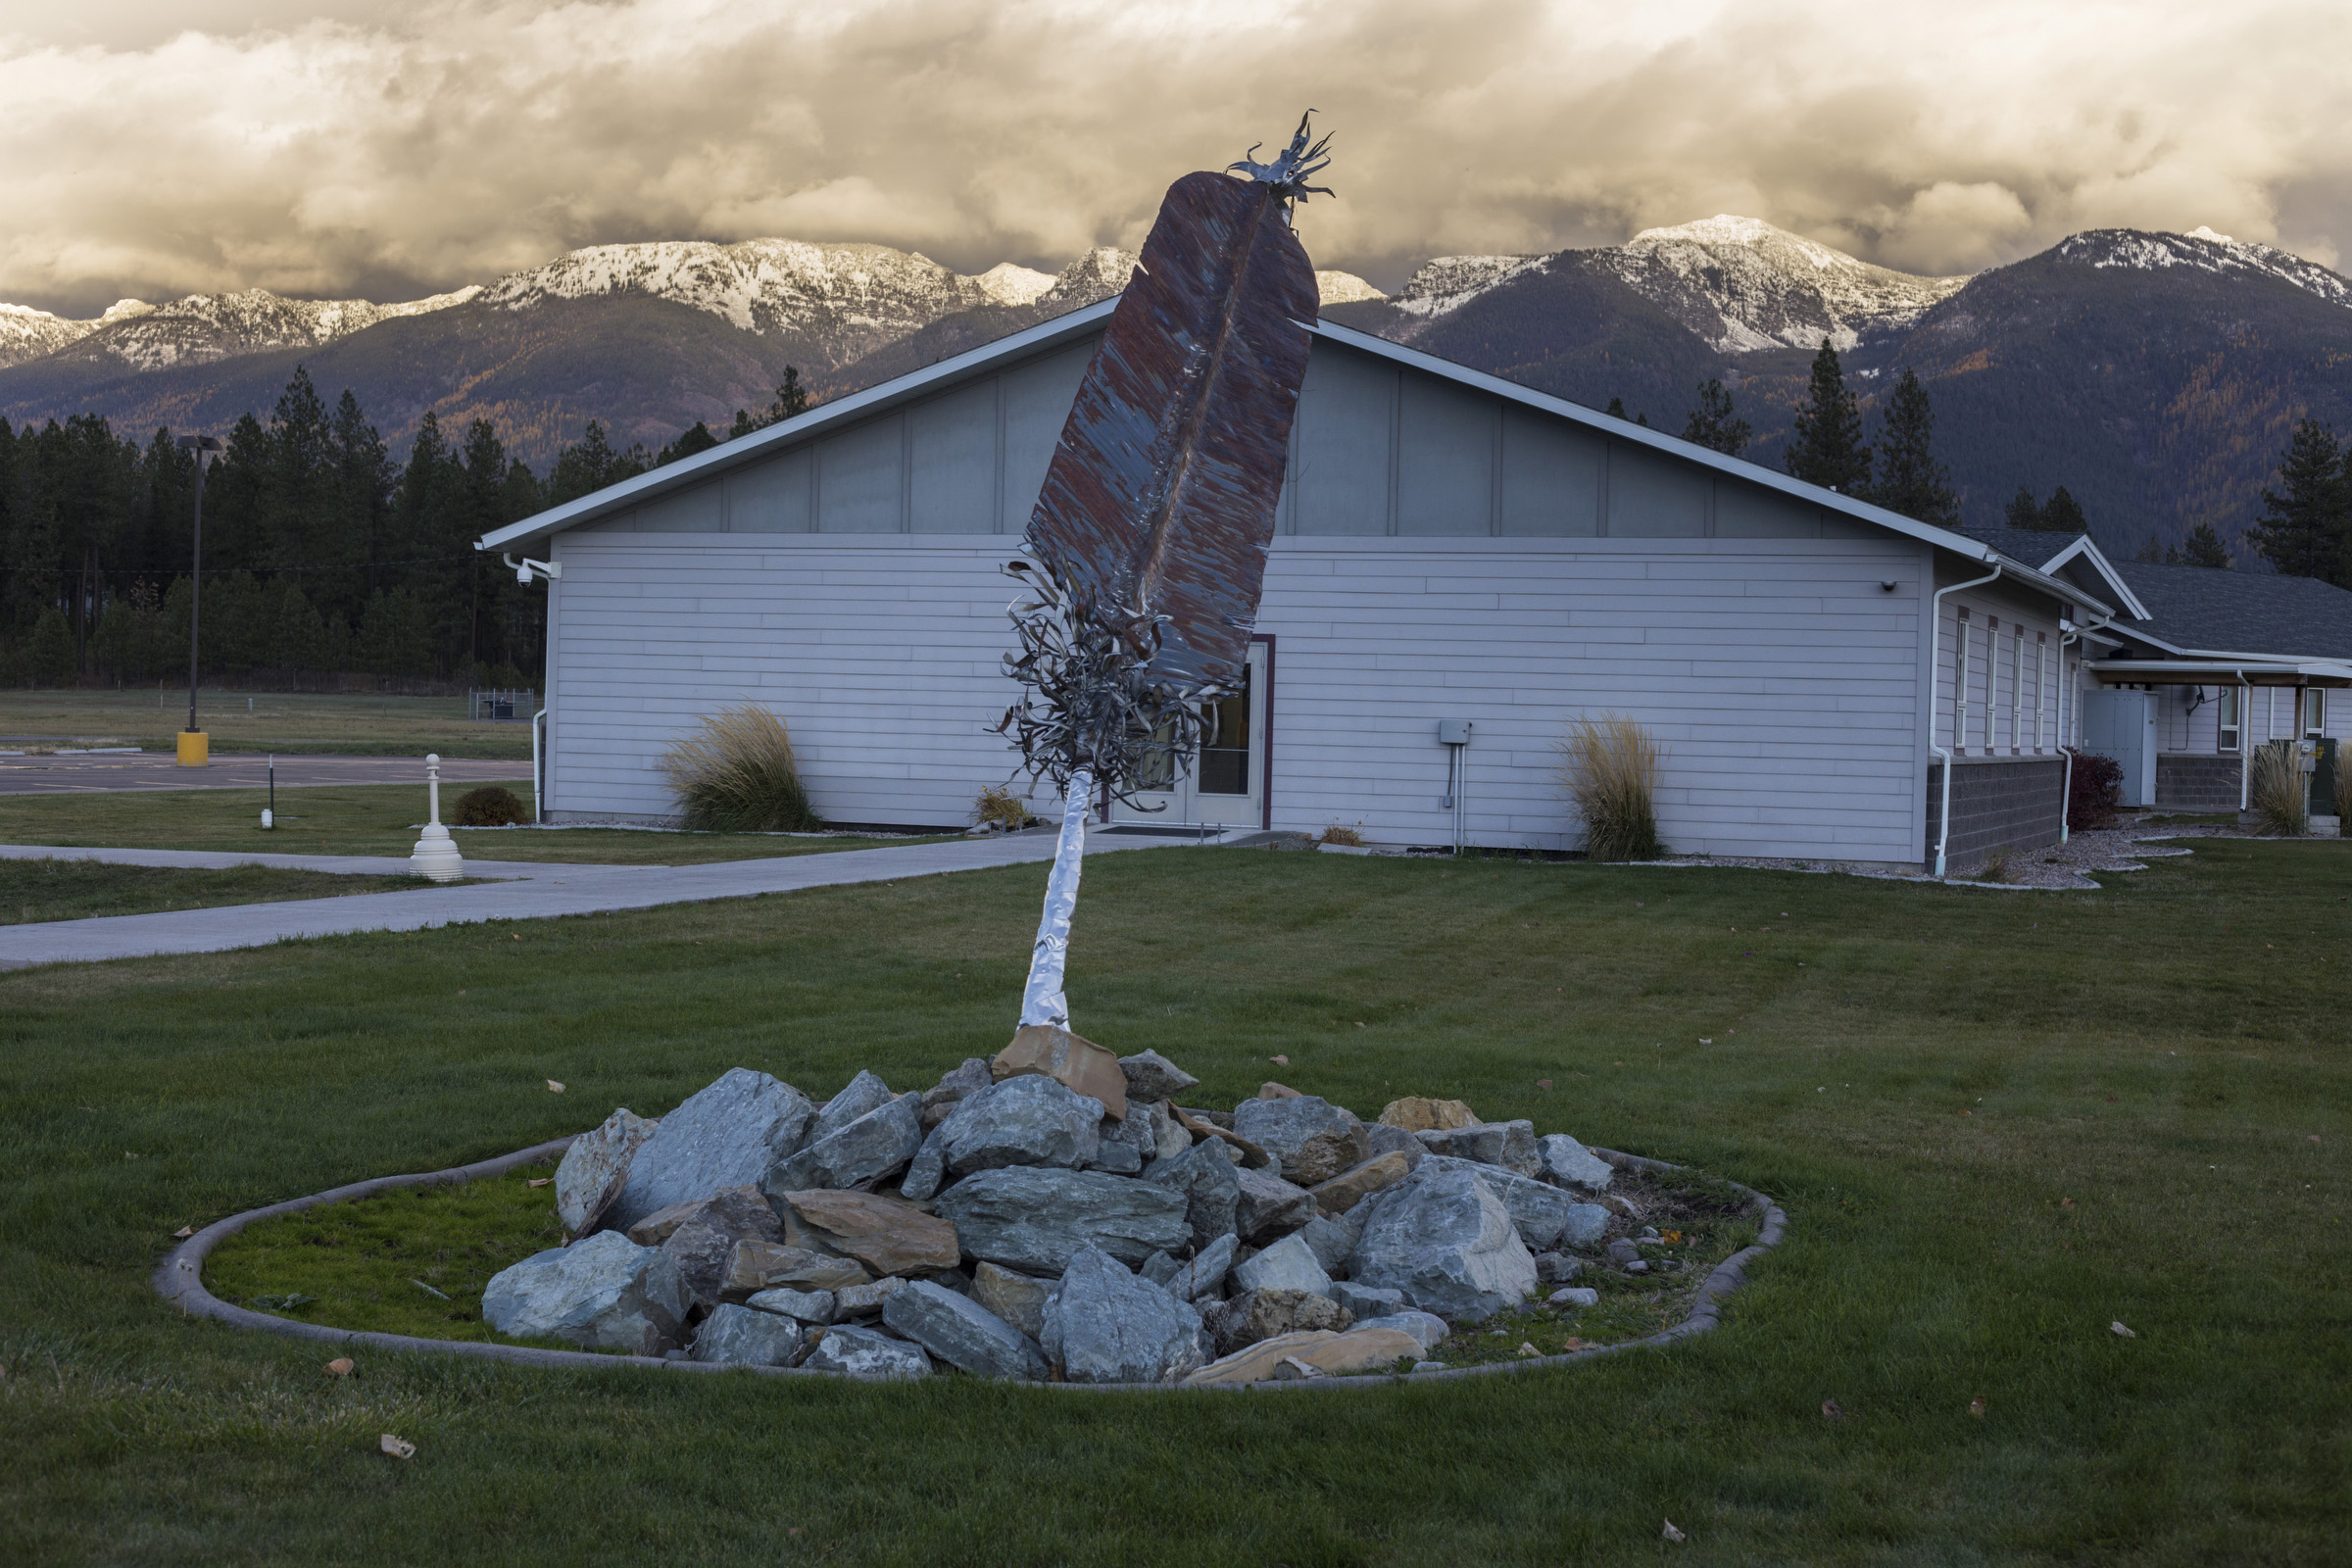 A sculpture of a feather sits nearby the Salish Kootenai College in Pablo, Montana, on Sunday, October 22, 2017. (Photo by Brittany Greeson)